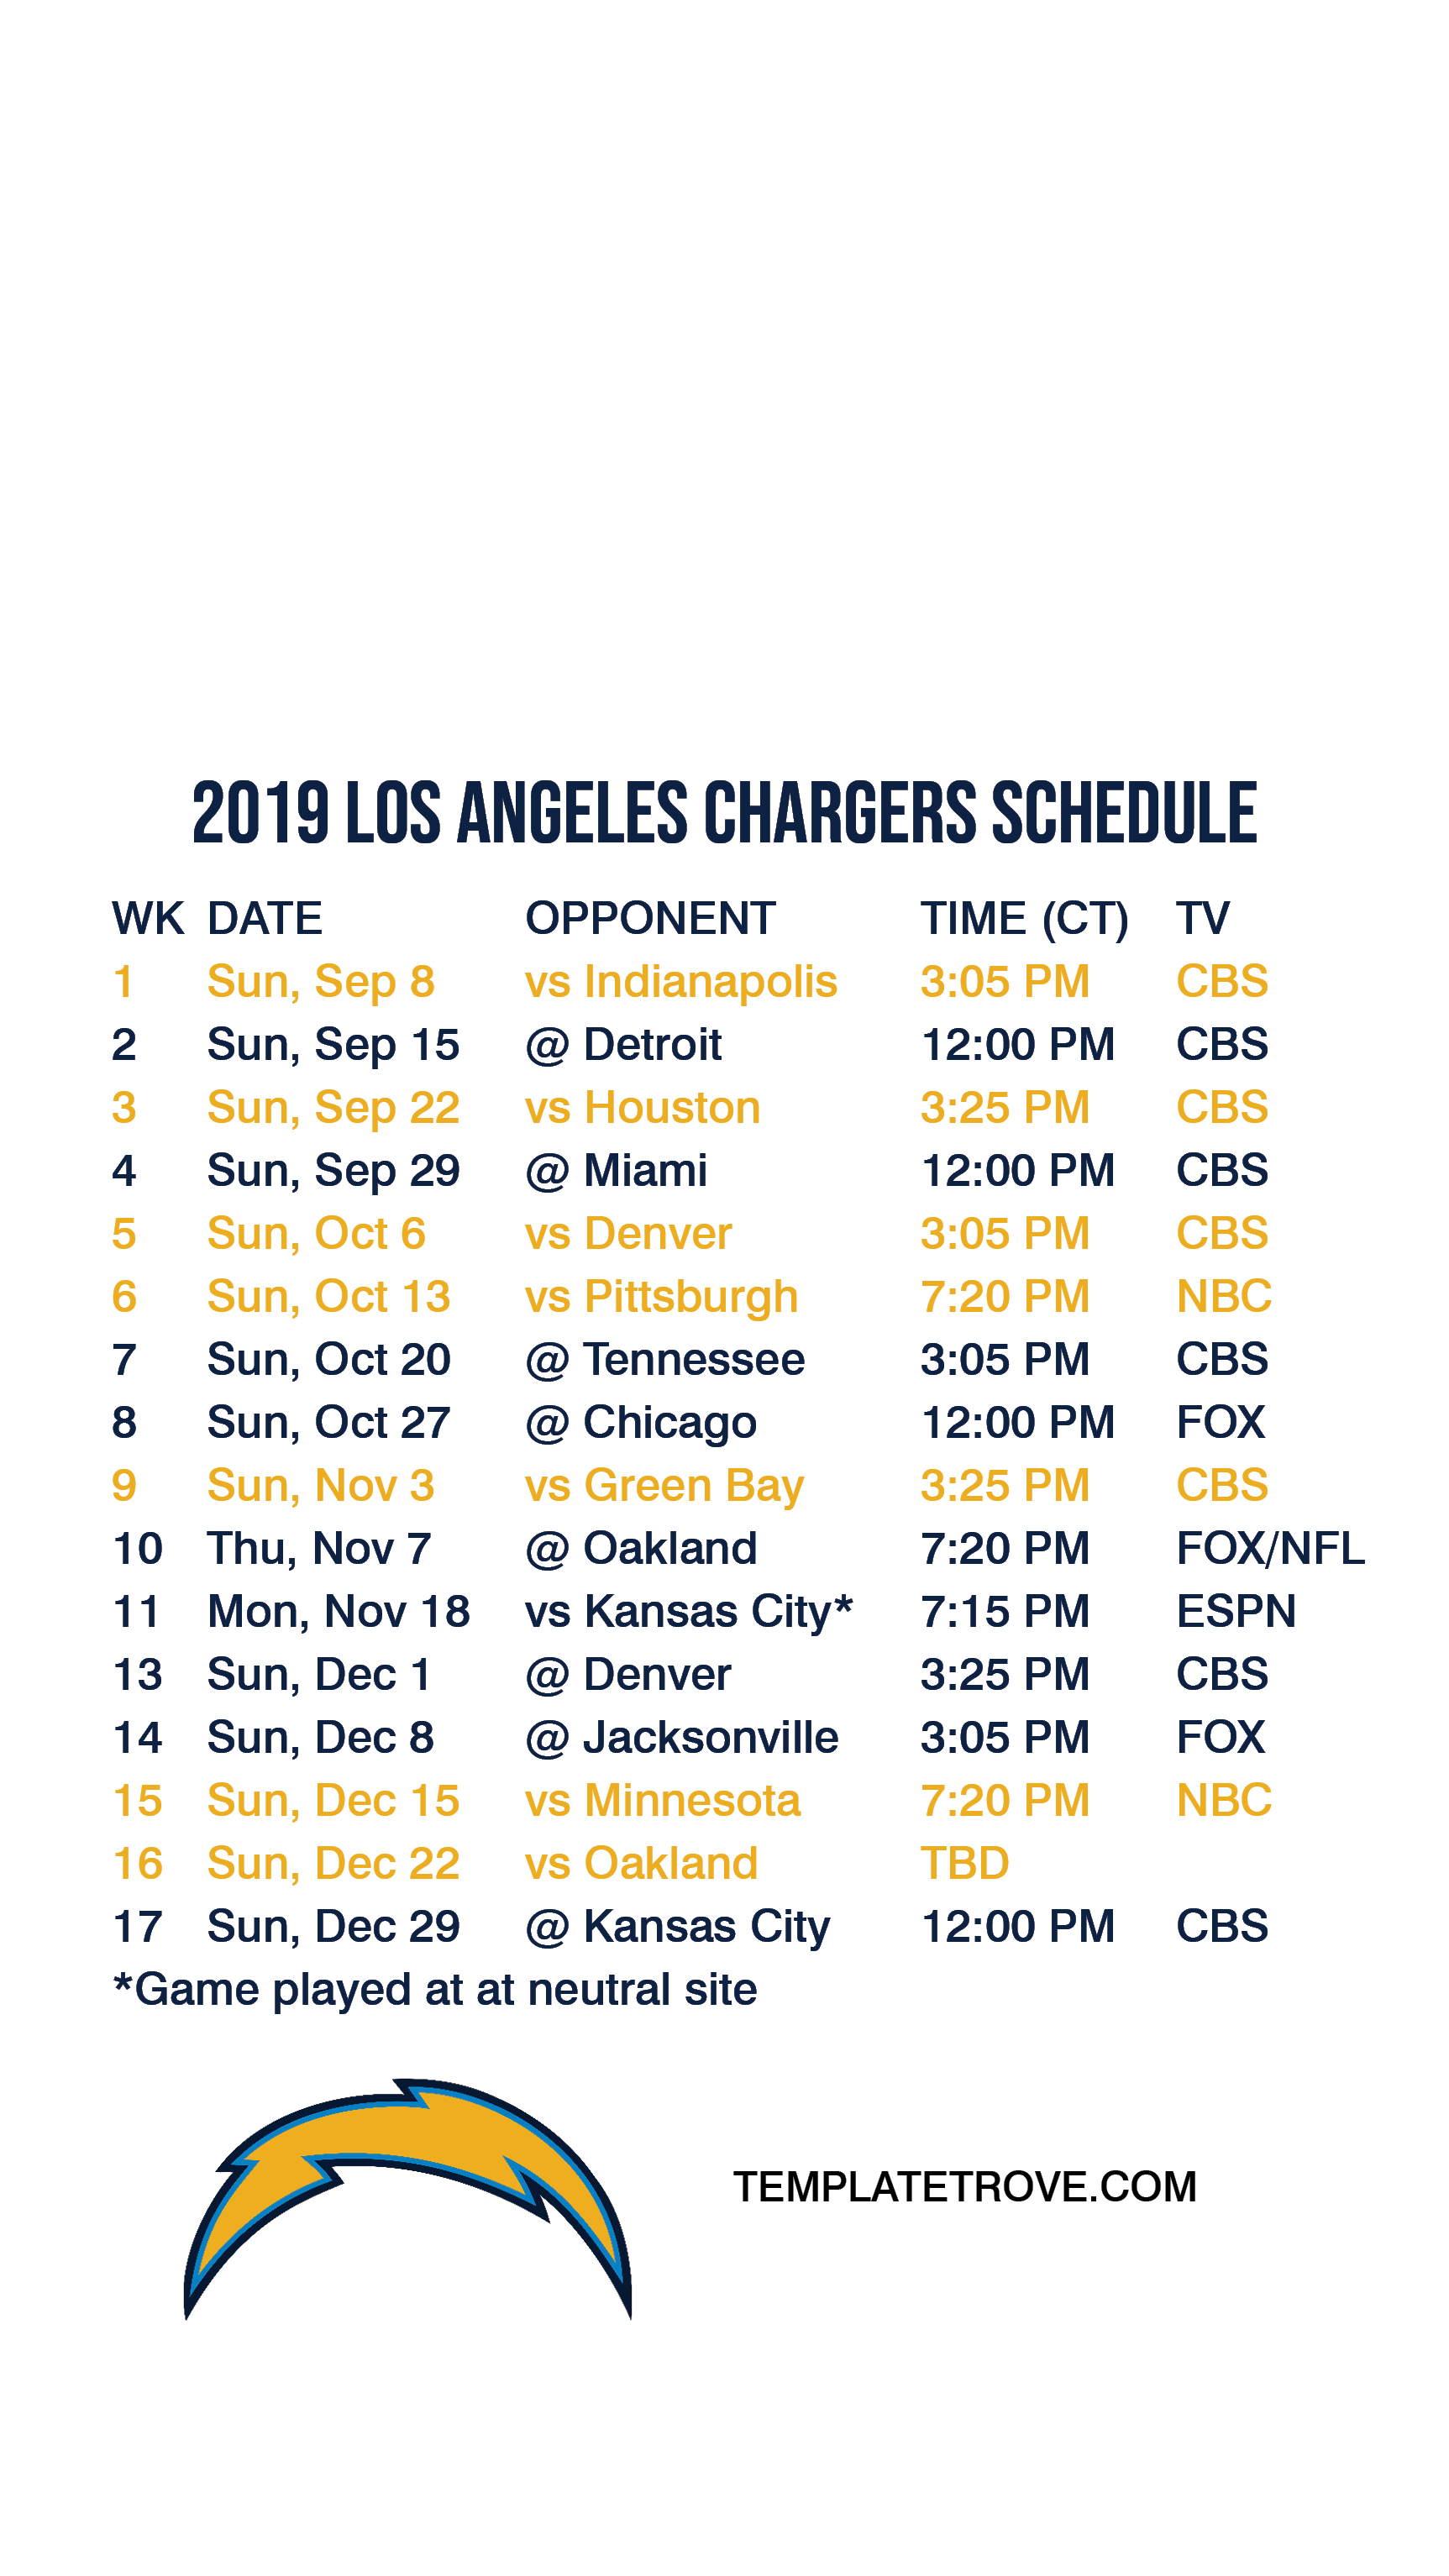 Chargers Schedule 2020.2019 2020 Los Angeles Chargers Lock Screen Schedule For